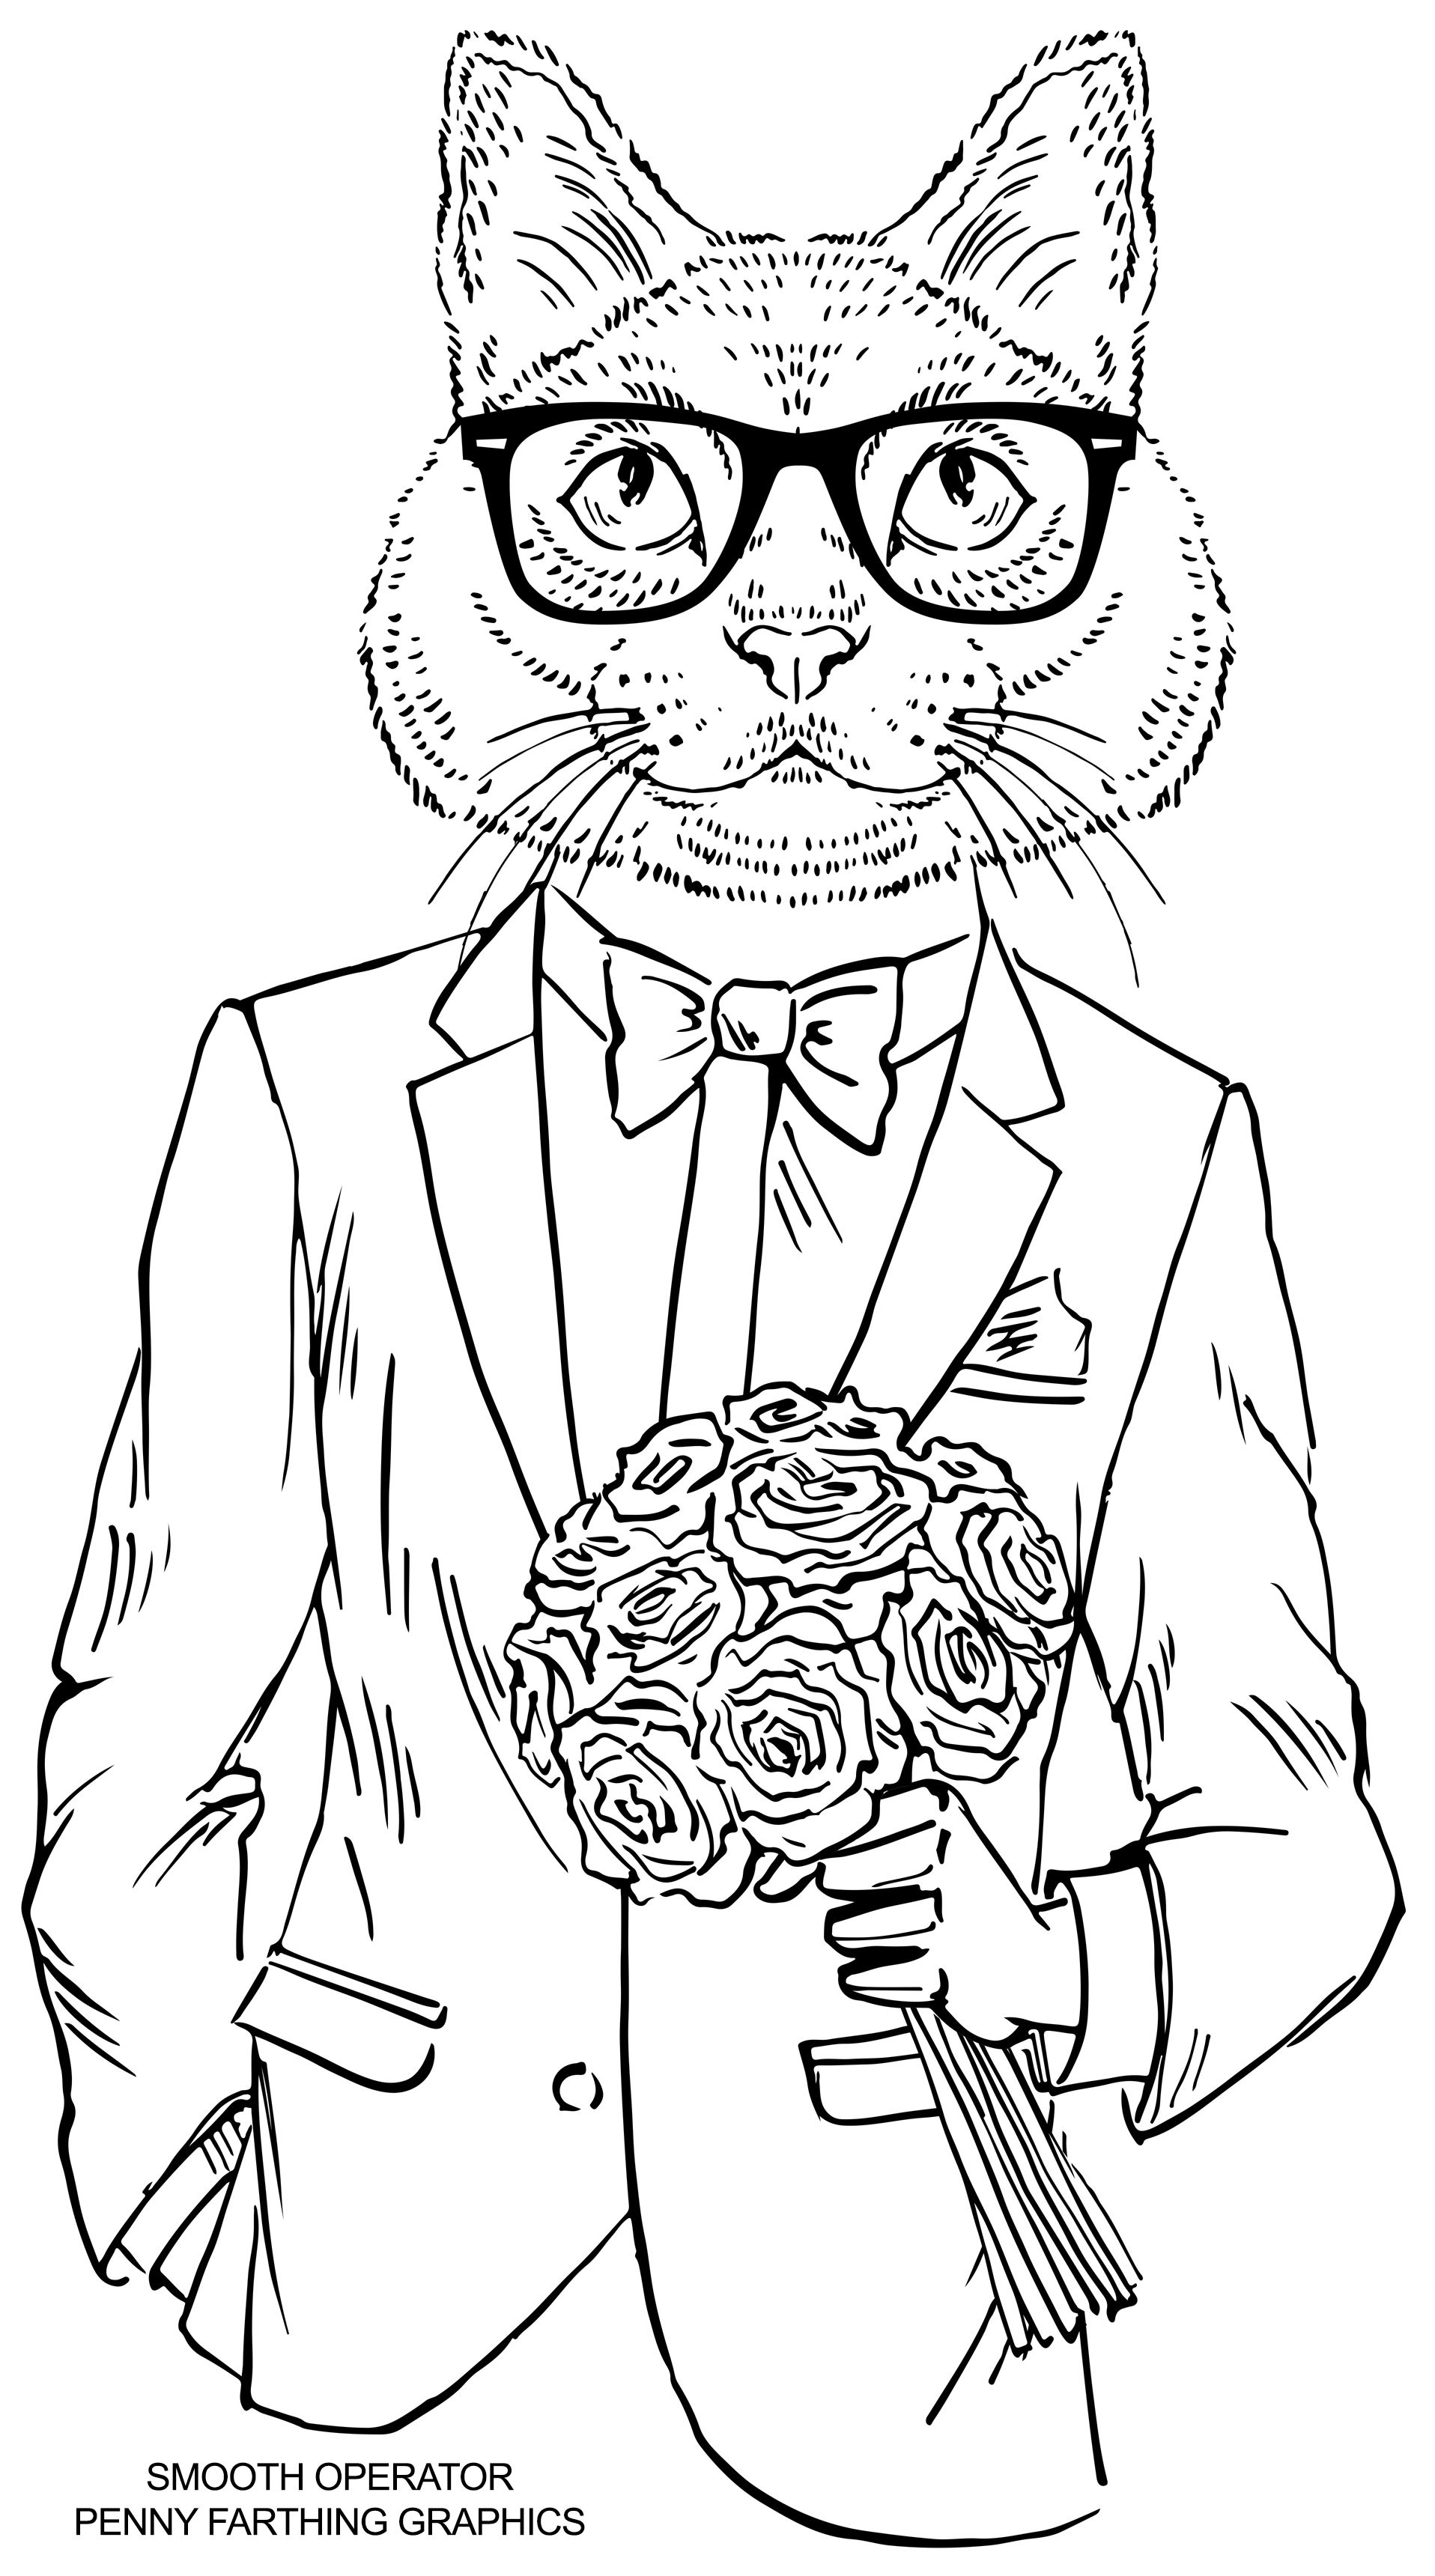 Cat from smooth operator would love to buy these Dapper animals coloring book